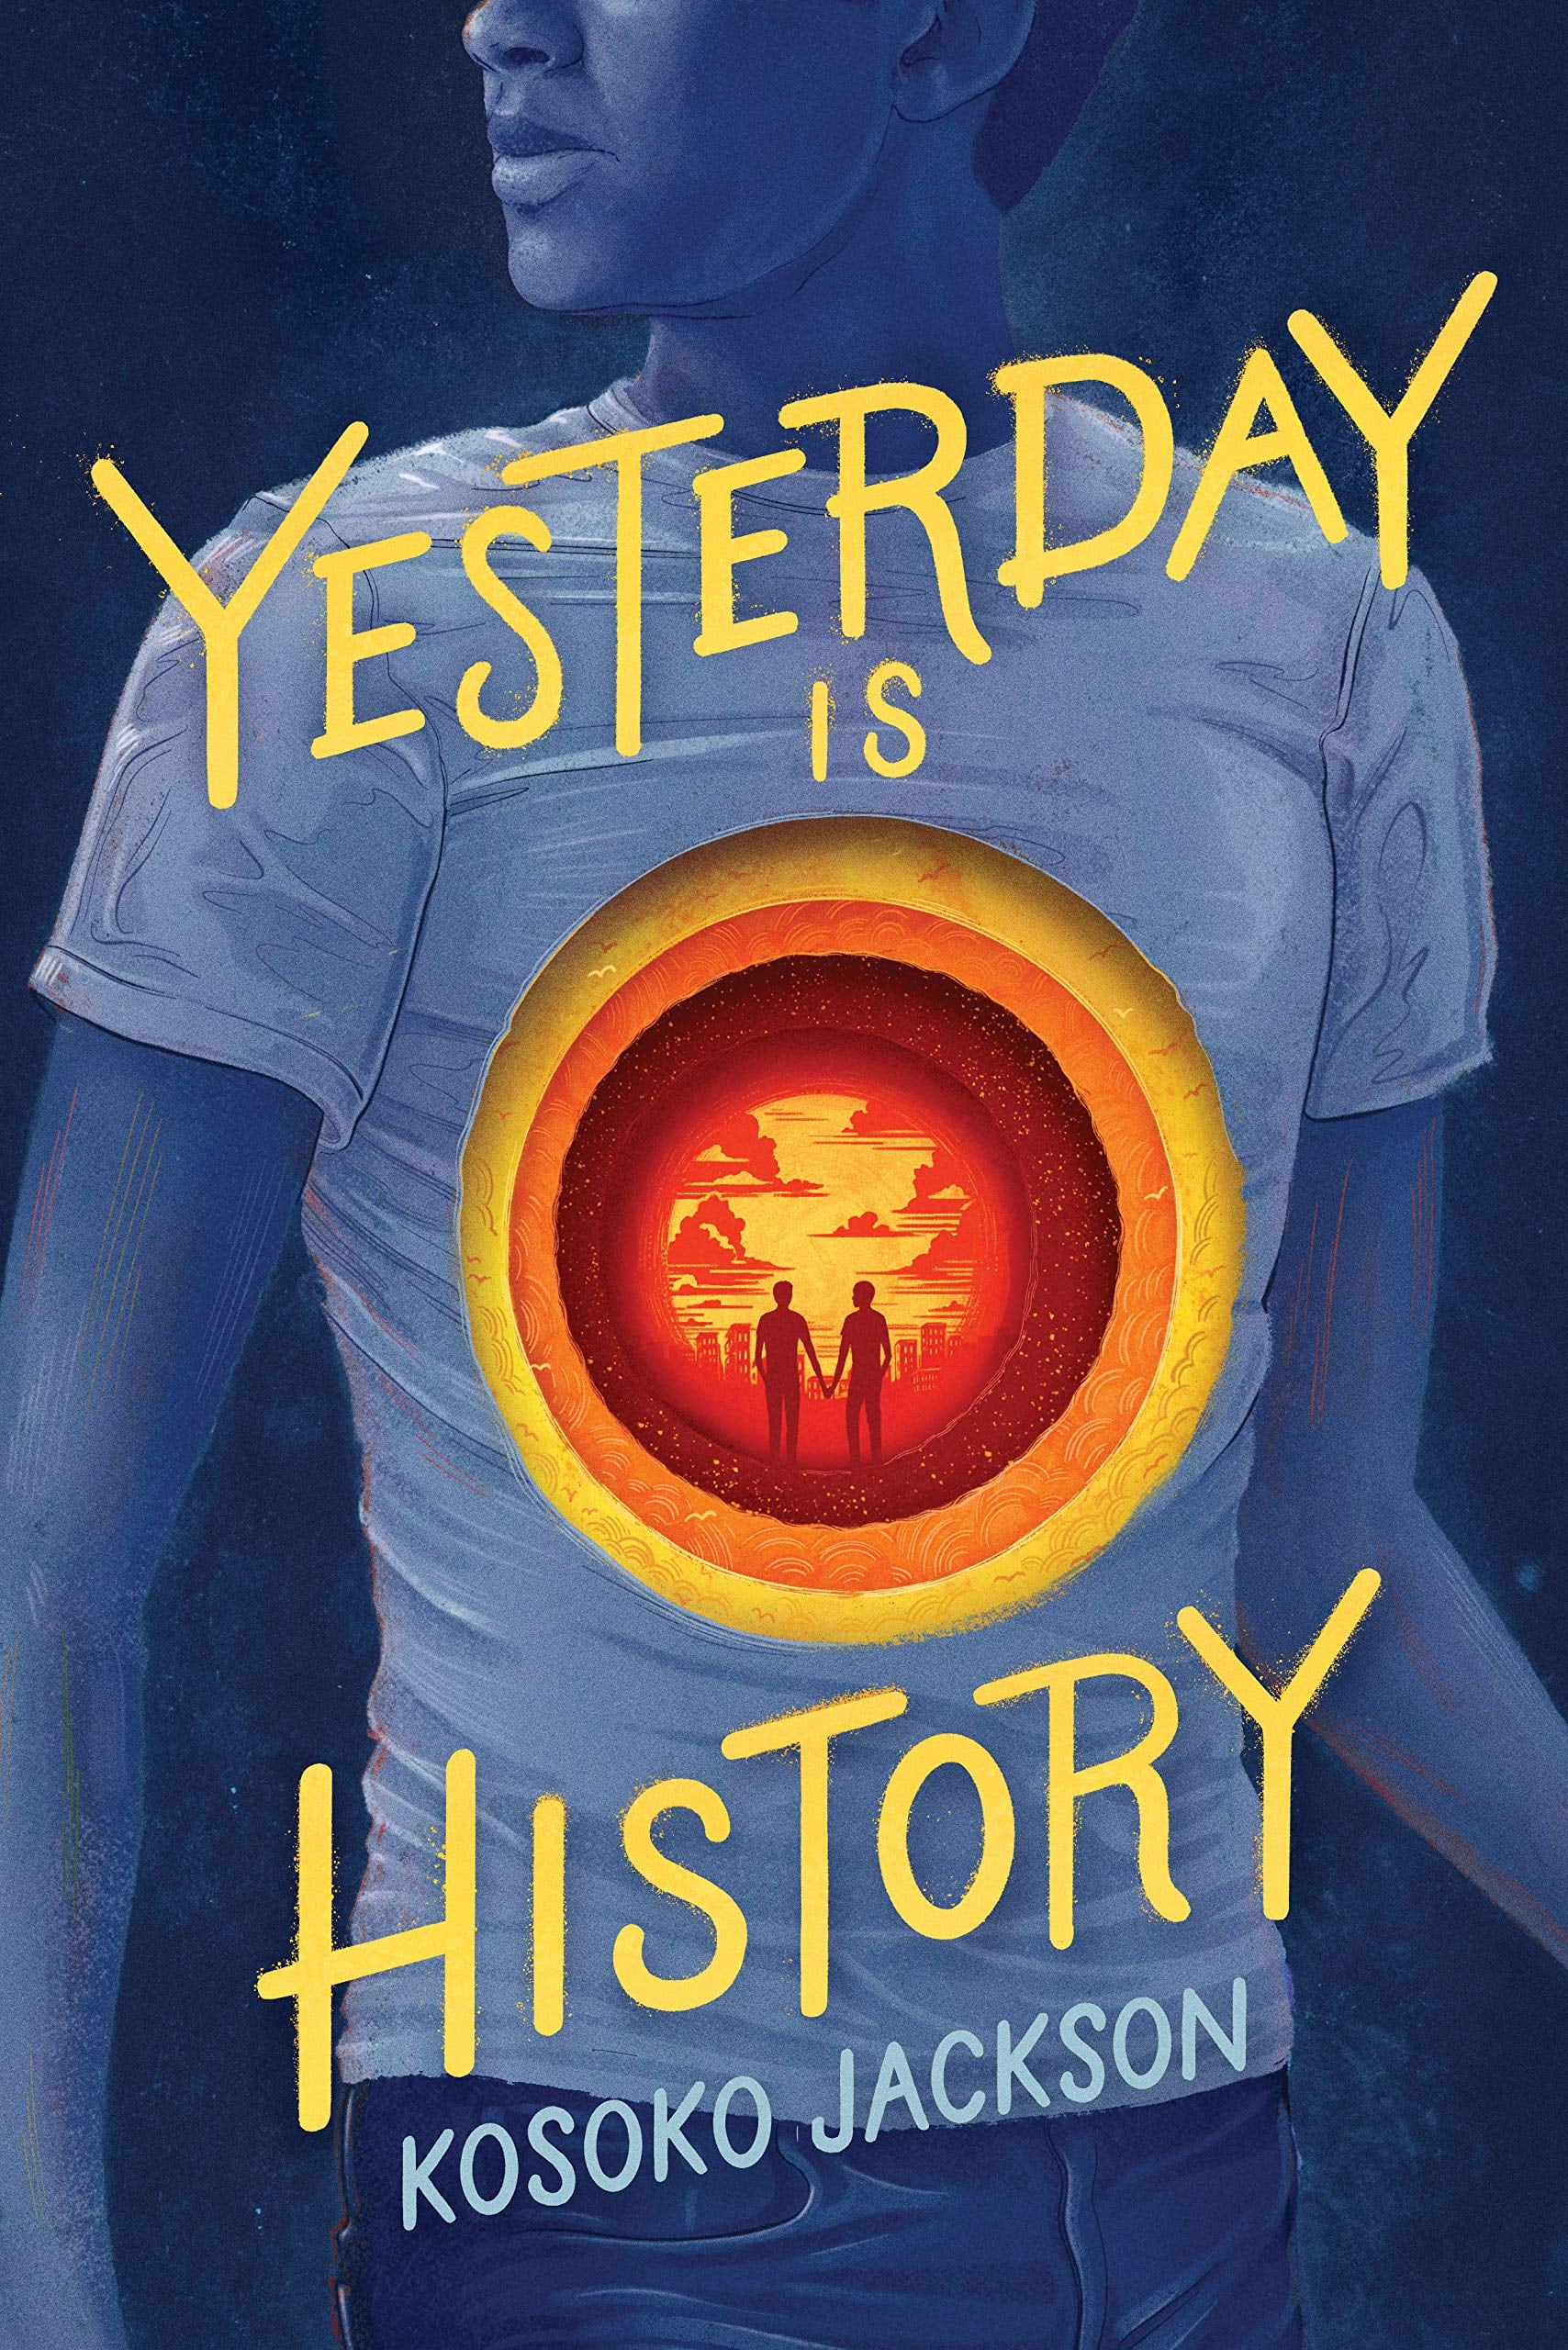 Yesterday is History by Kosoko Jackson.